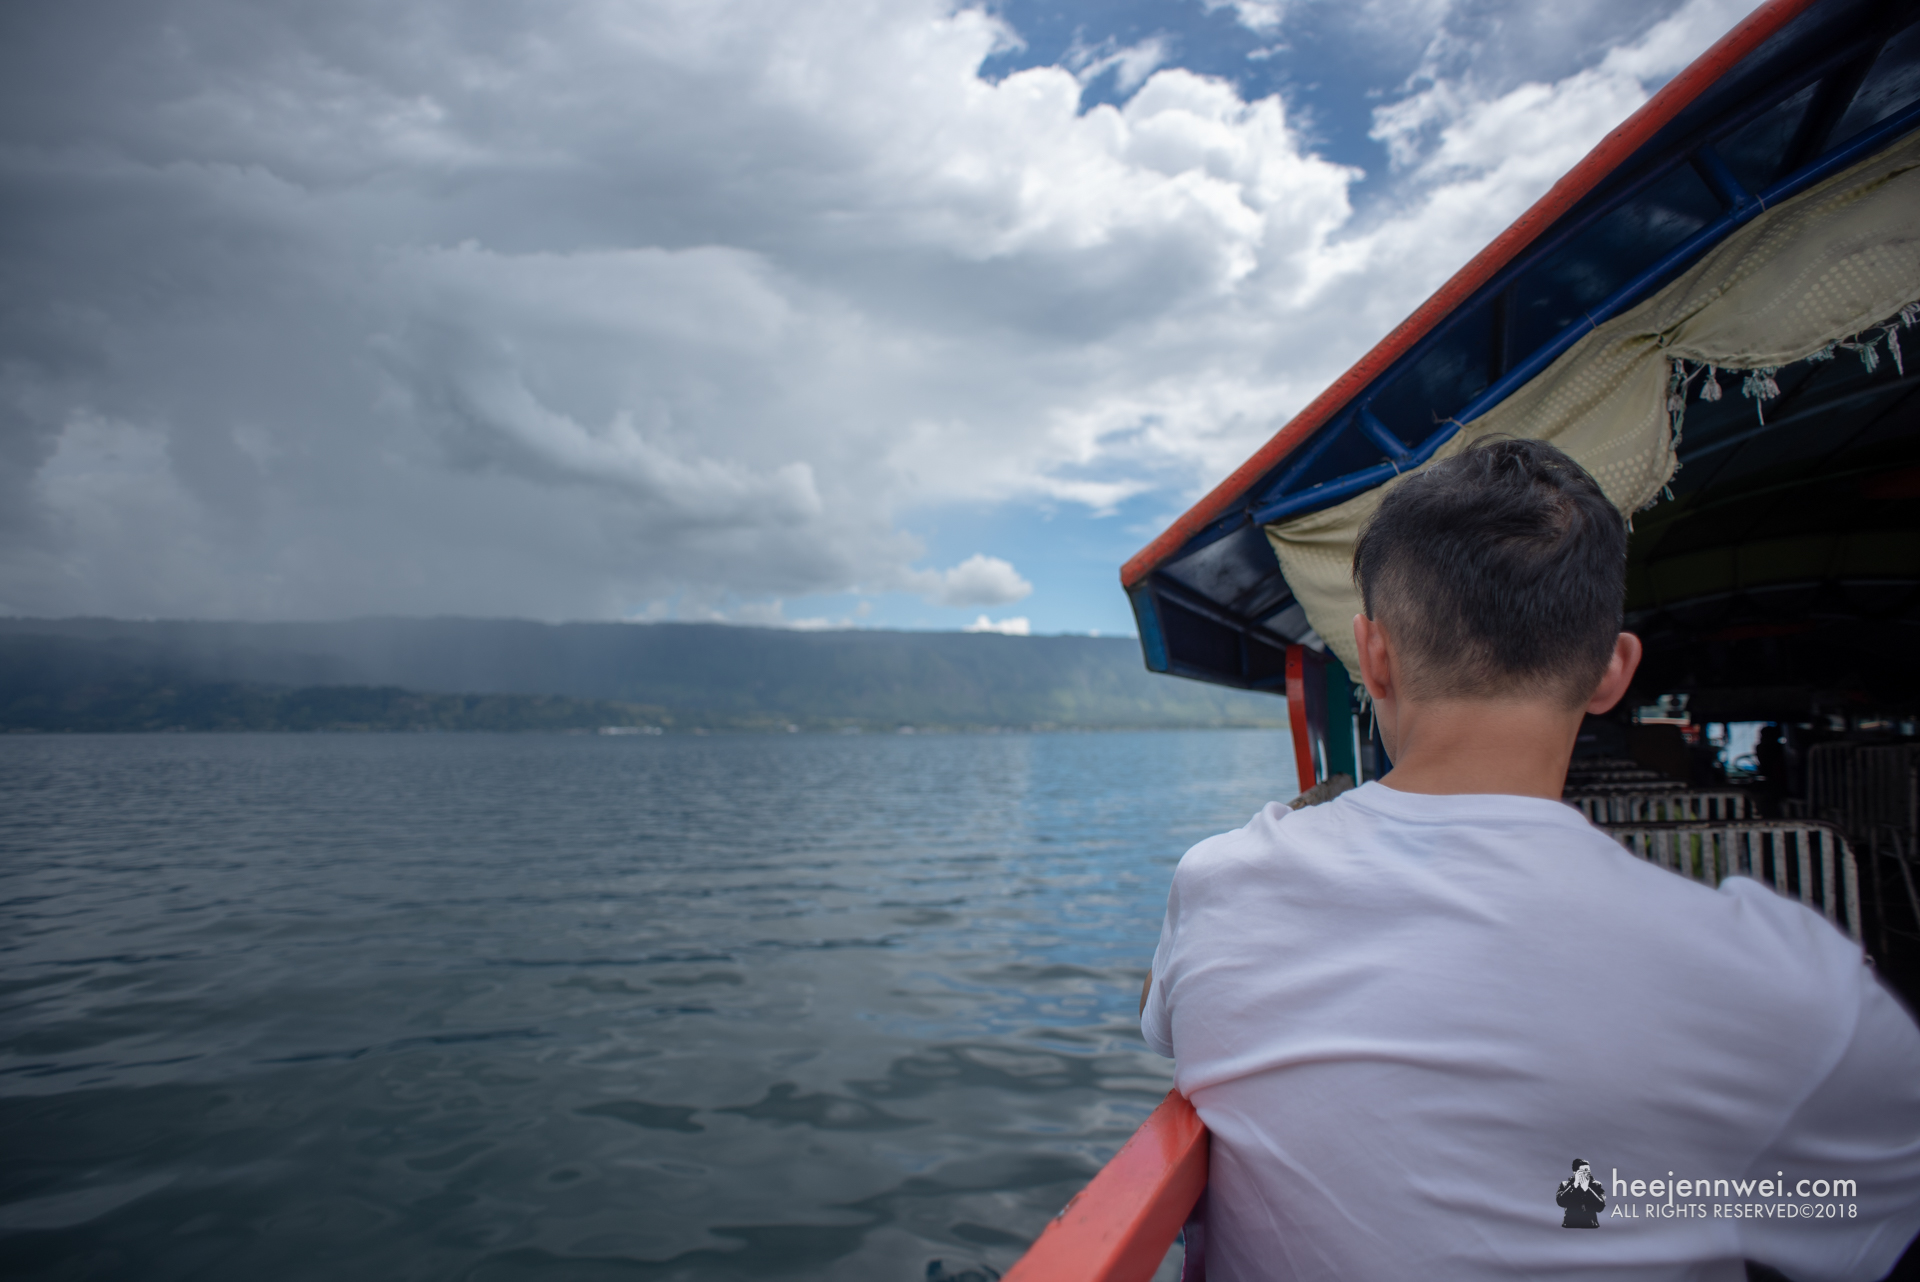 At Lake Toba, ferry ride from Parapat town to Pulau Samosir (Tuk Tuk Town).